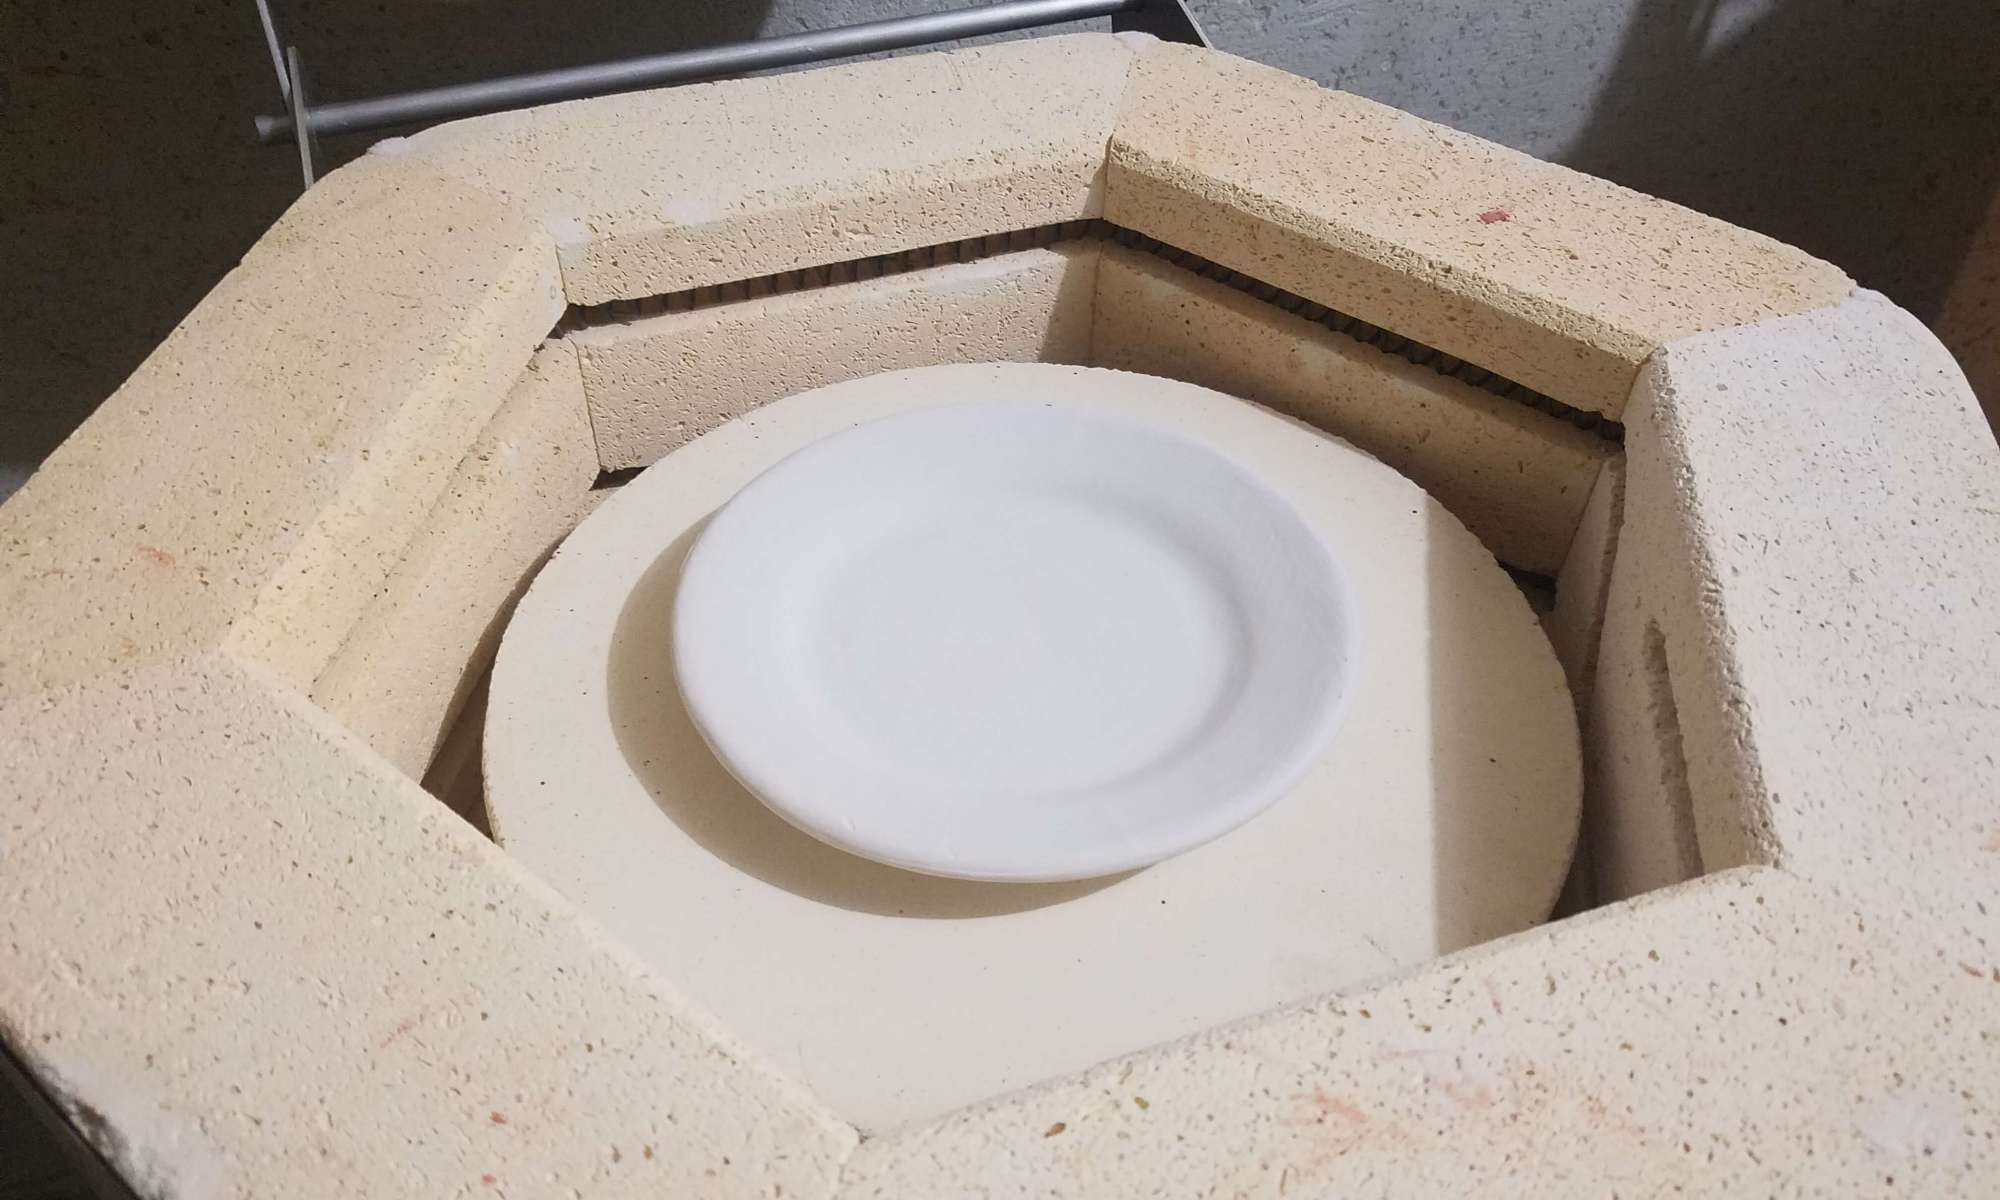 loading the kiln with test plates